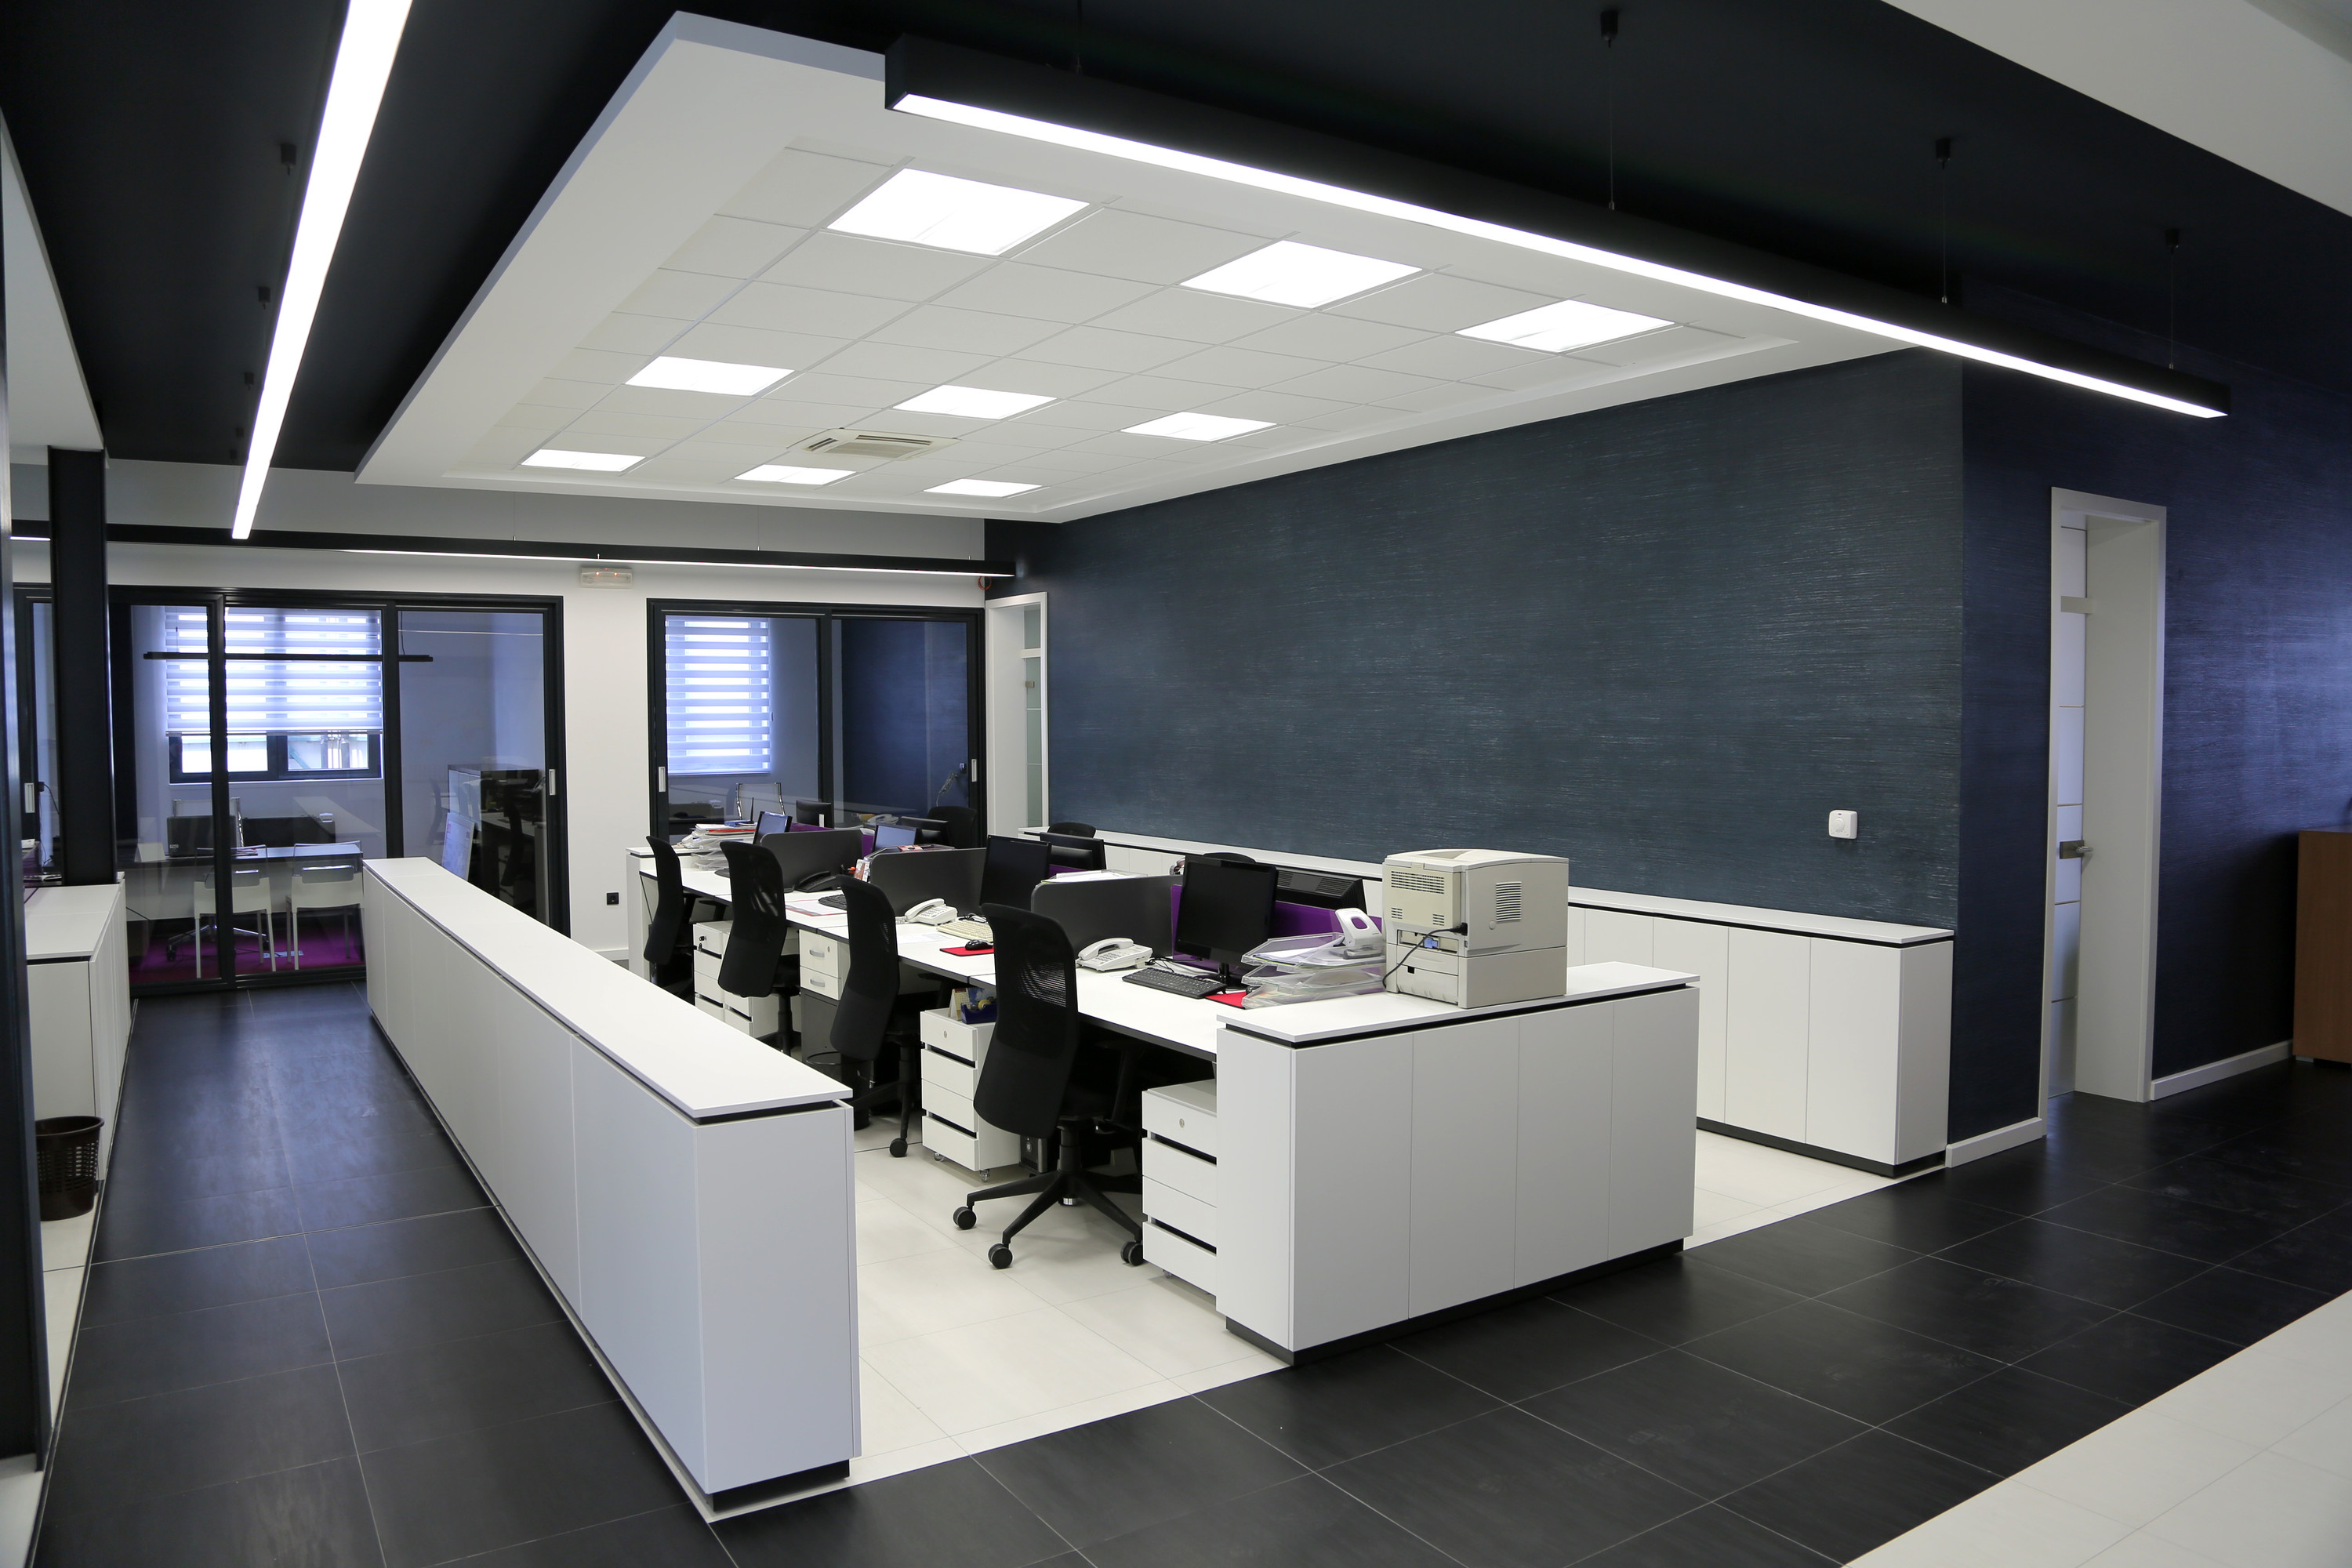 Good Power Perth Electrical Is A Trusted Name In Commercial Office Fitouts.  Whether You Are Moving Offices, Refurbishing The Current Office Or U201cmaking  Goodu201d On A ...